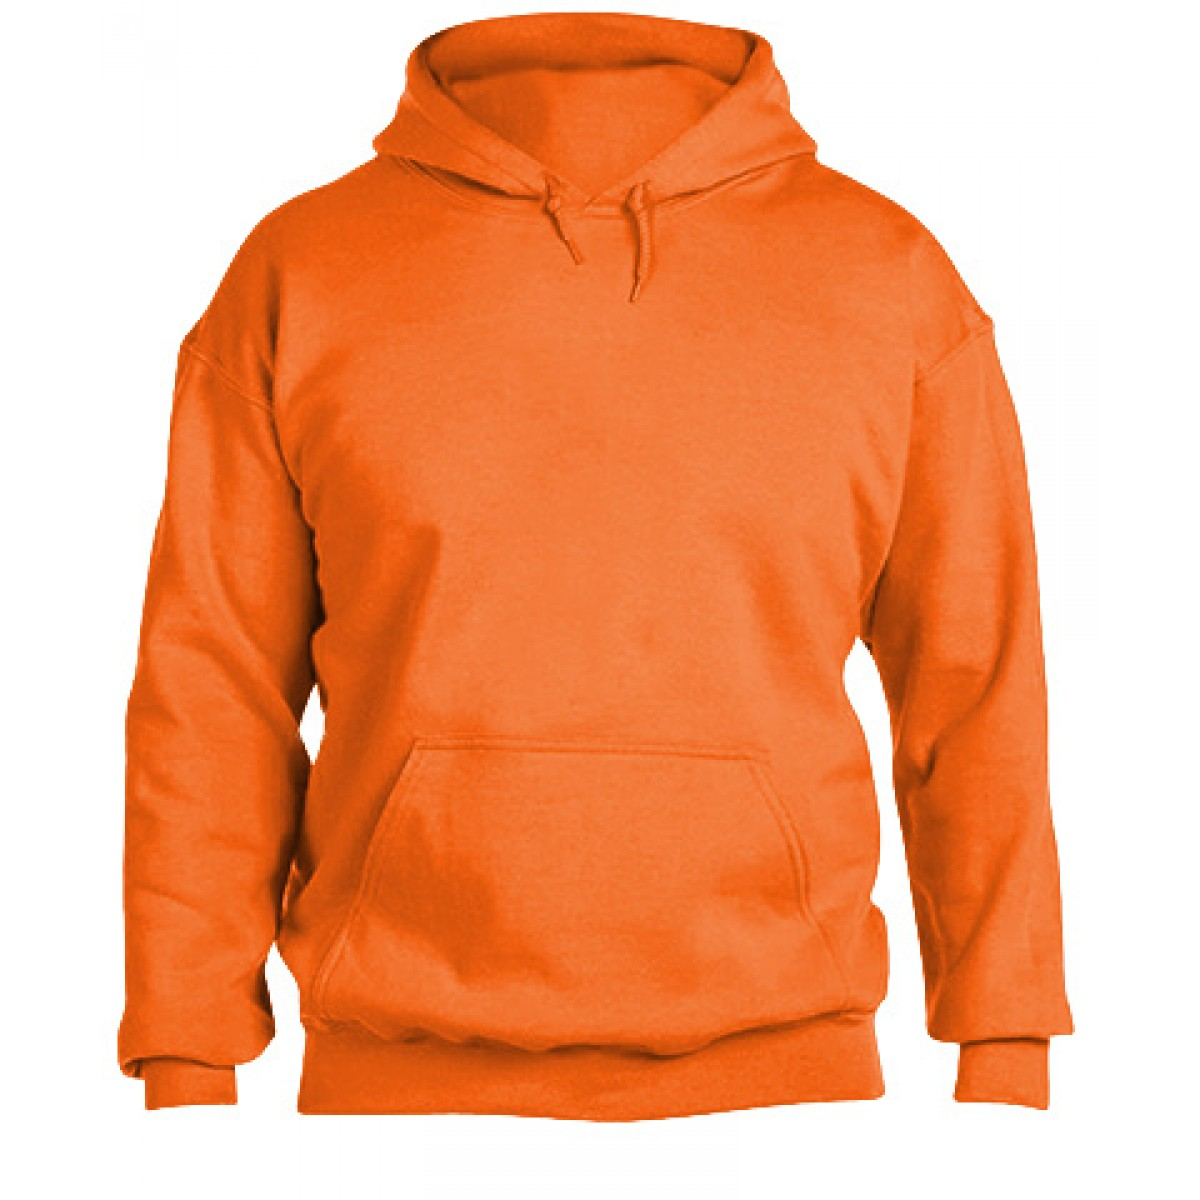 Hooded Sweatshirt  50/50 Heavy Blend-Safety Orange-YM